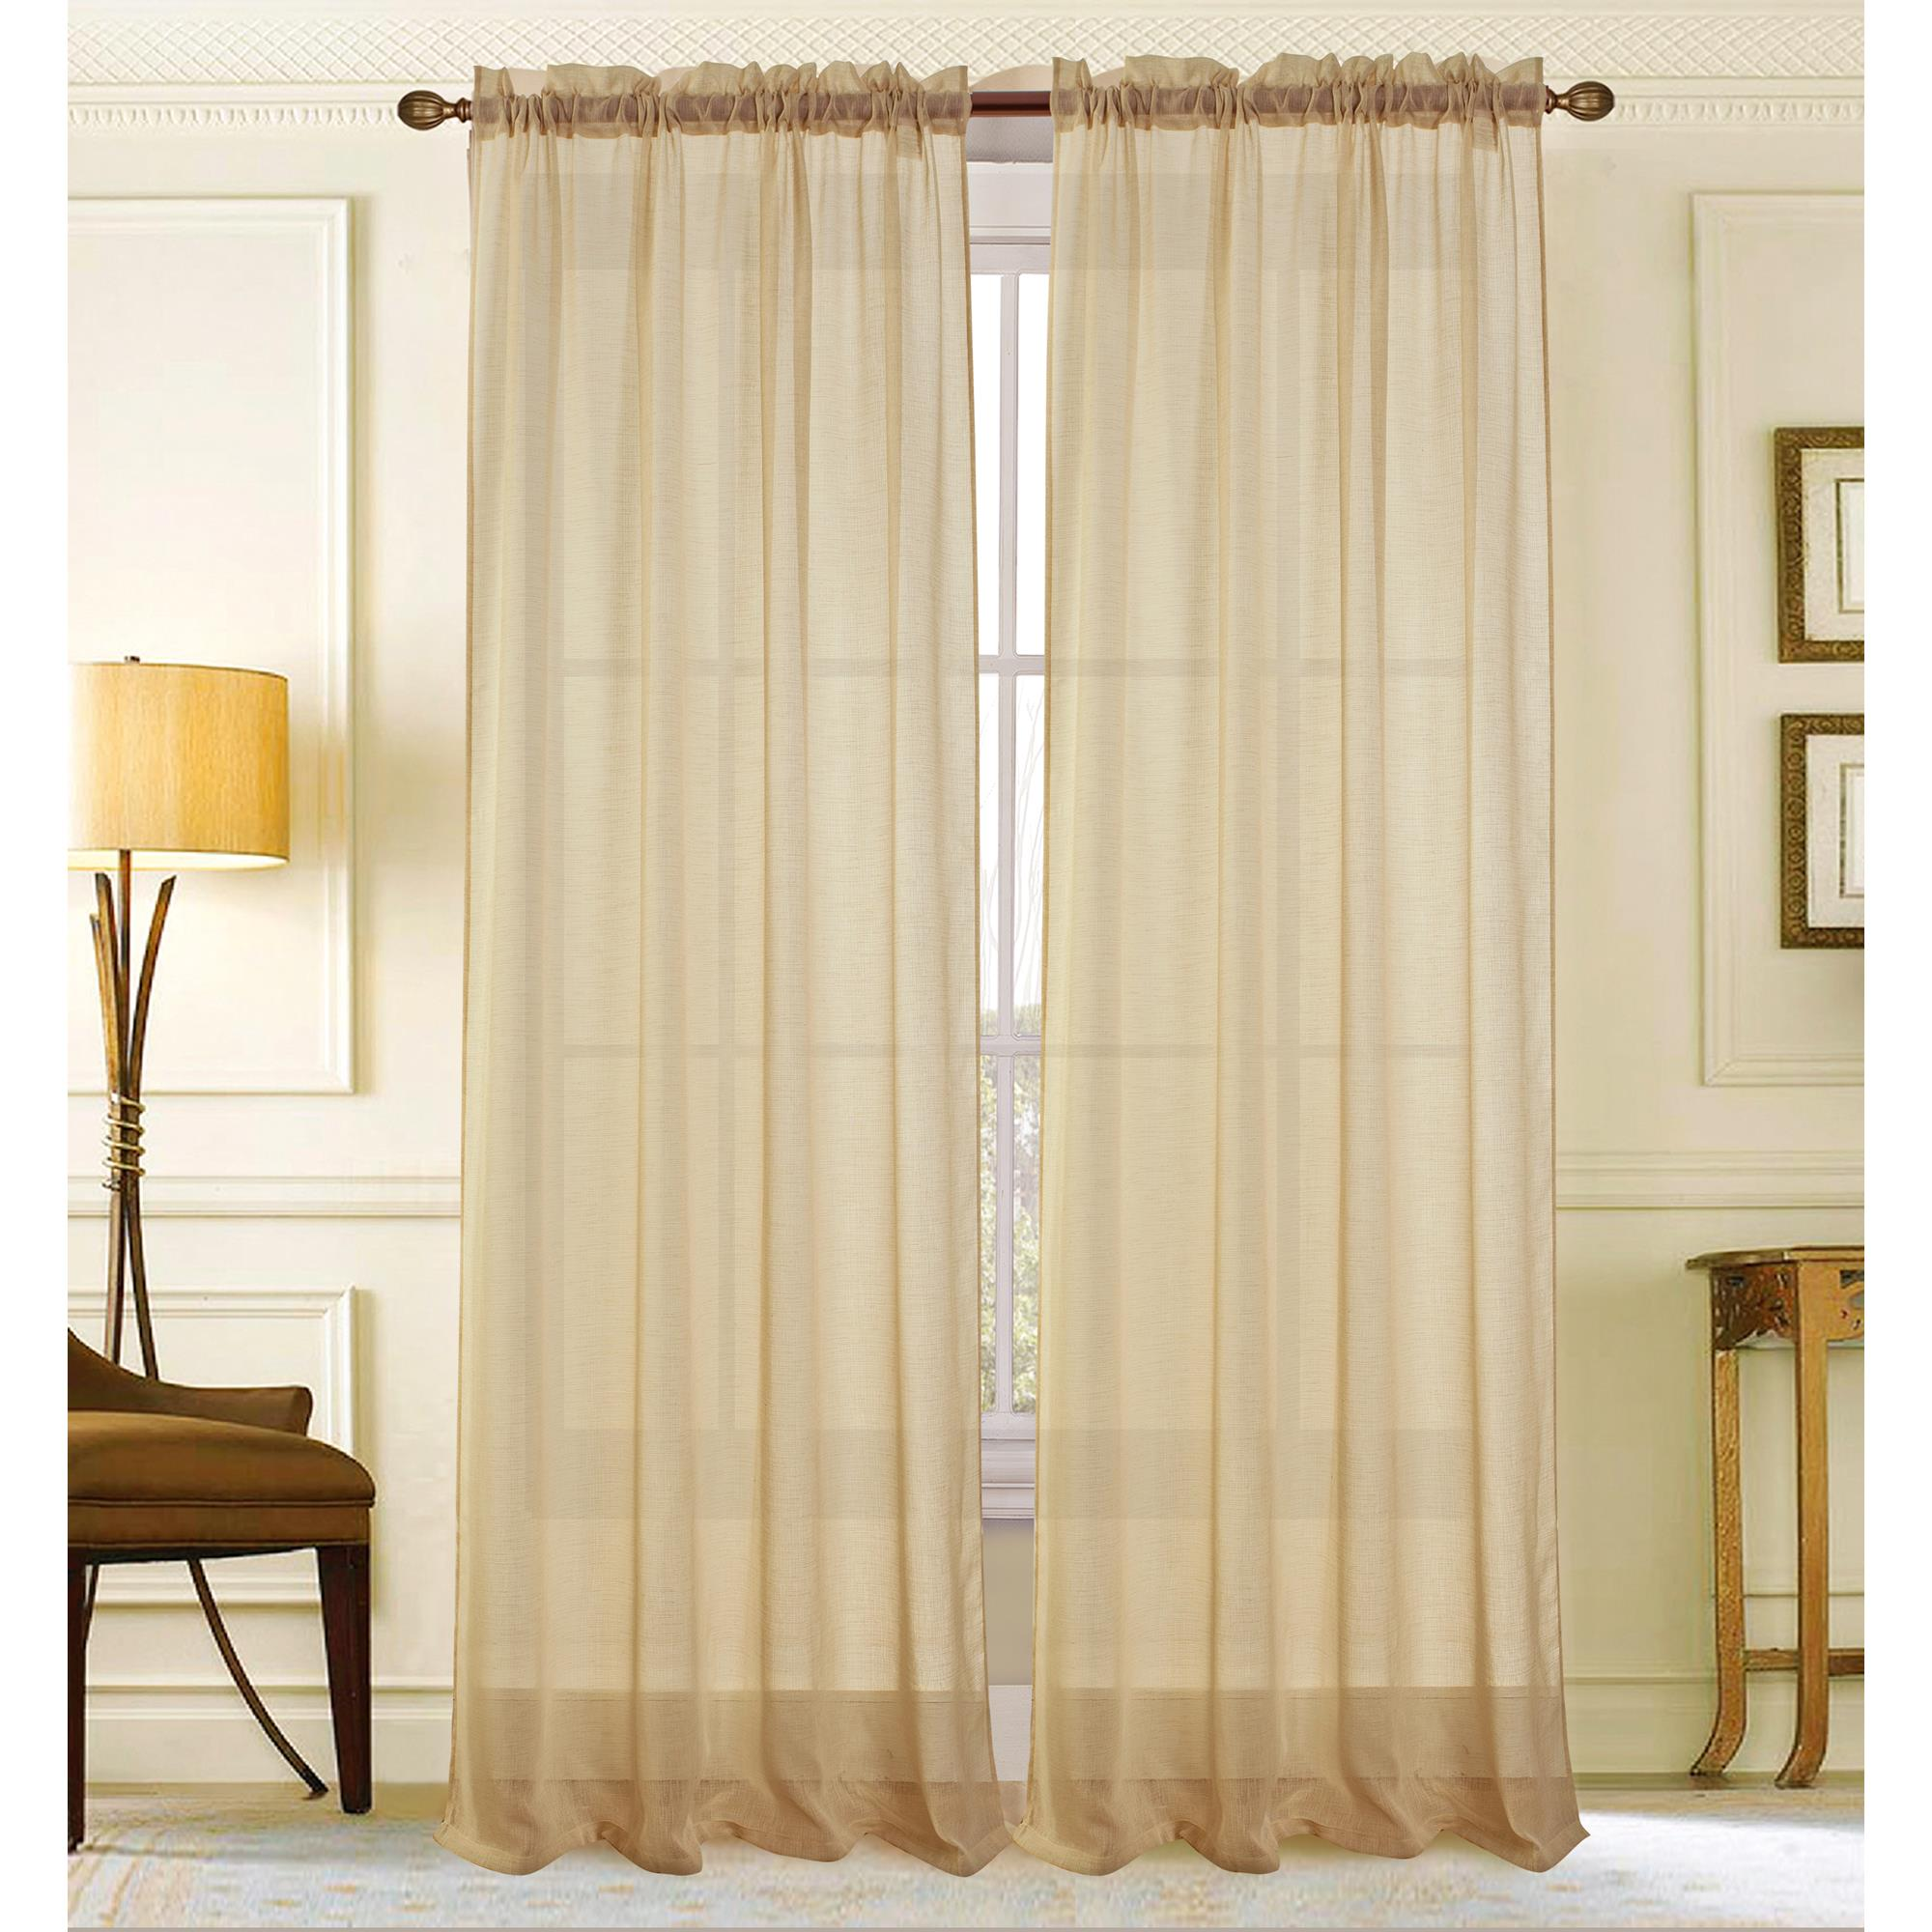 Astro Textured 54 x 90 in. Rod Pocket Curtain Panel, Beige by Ramallah Trading Company, Inc.